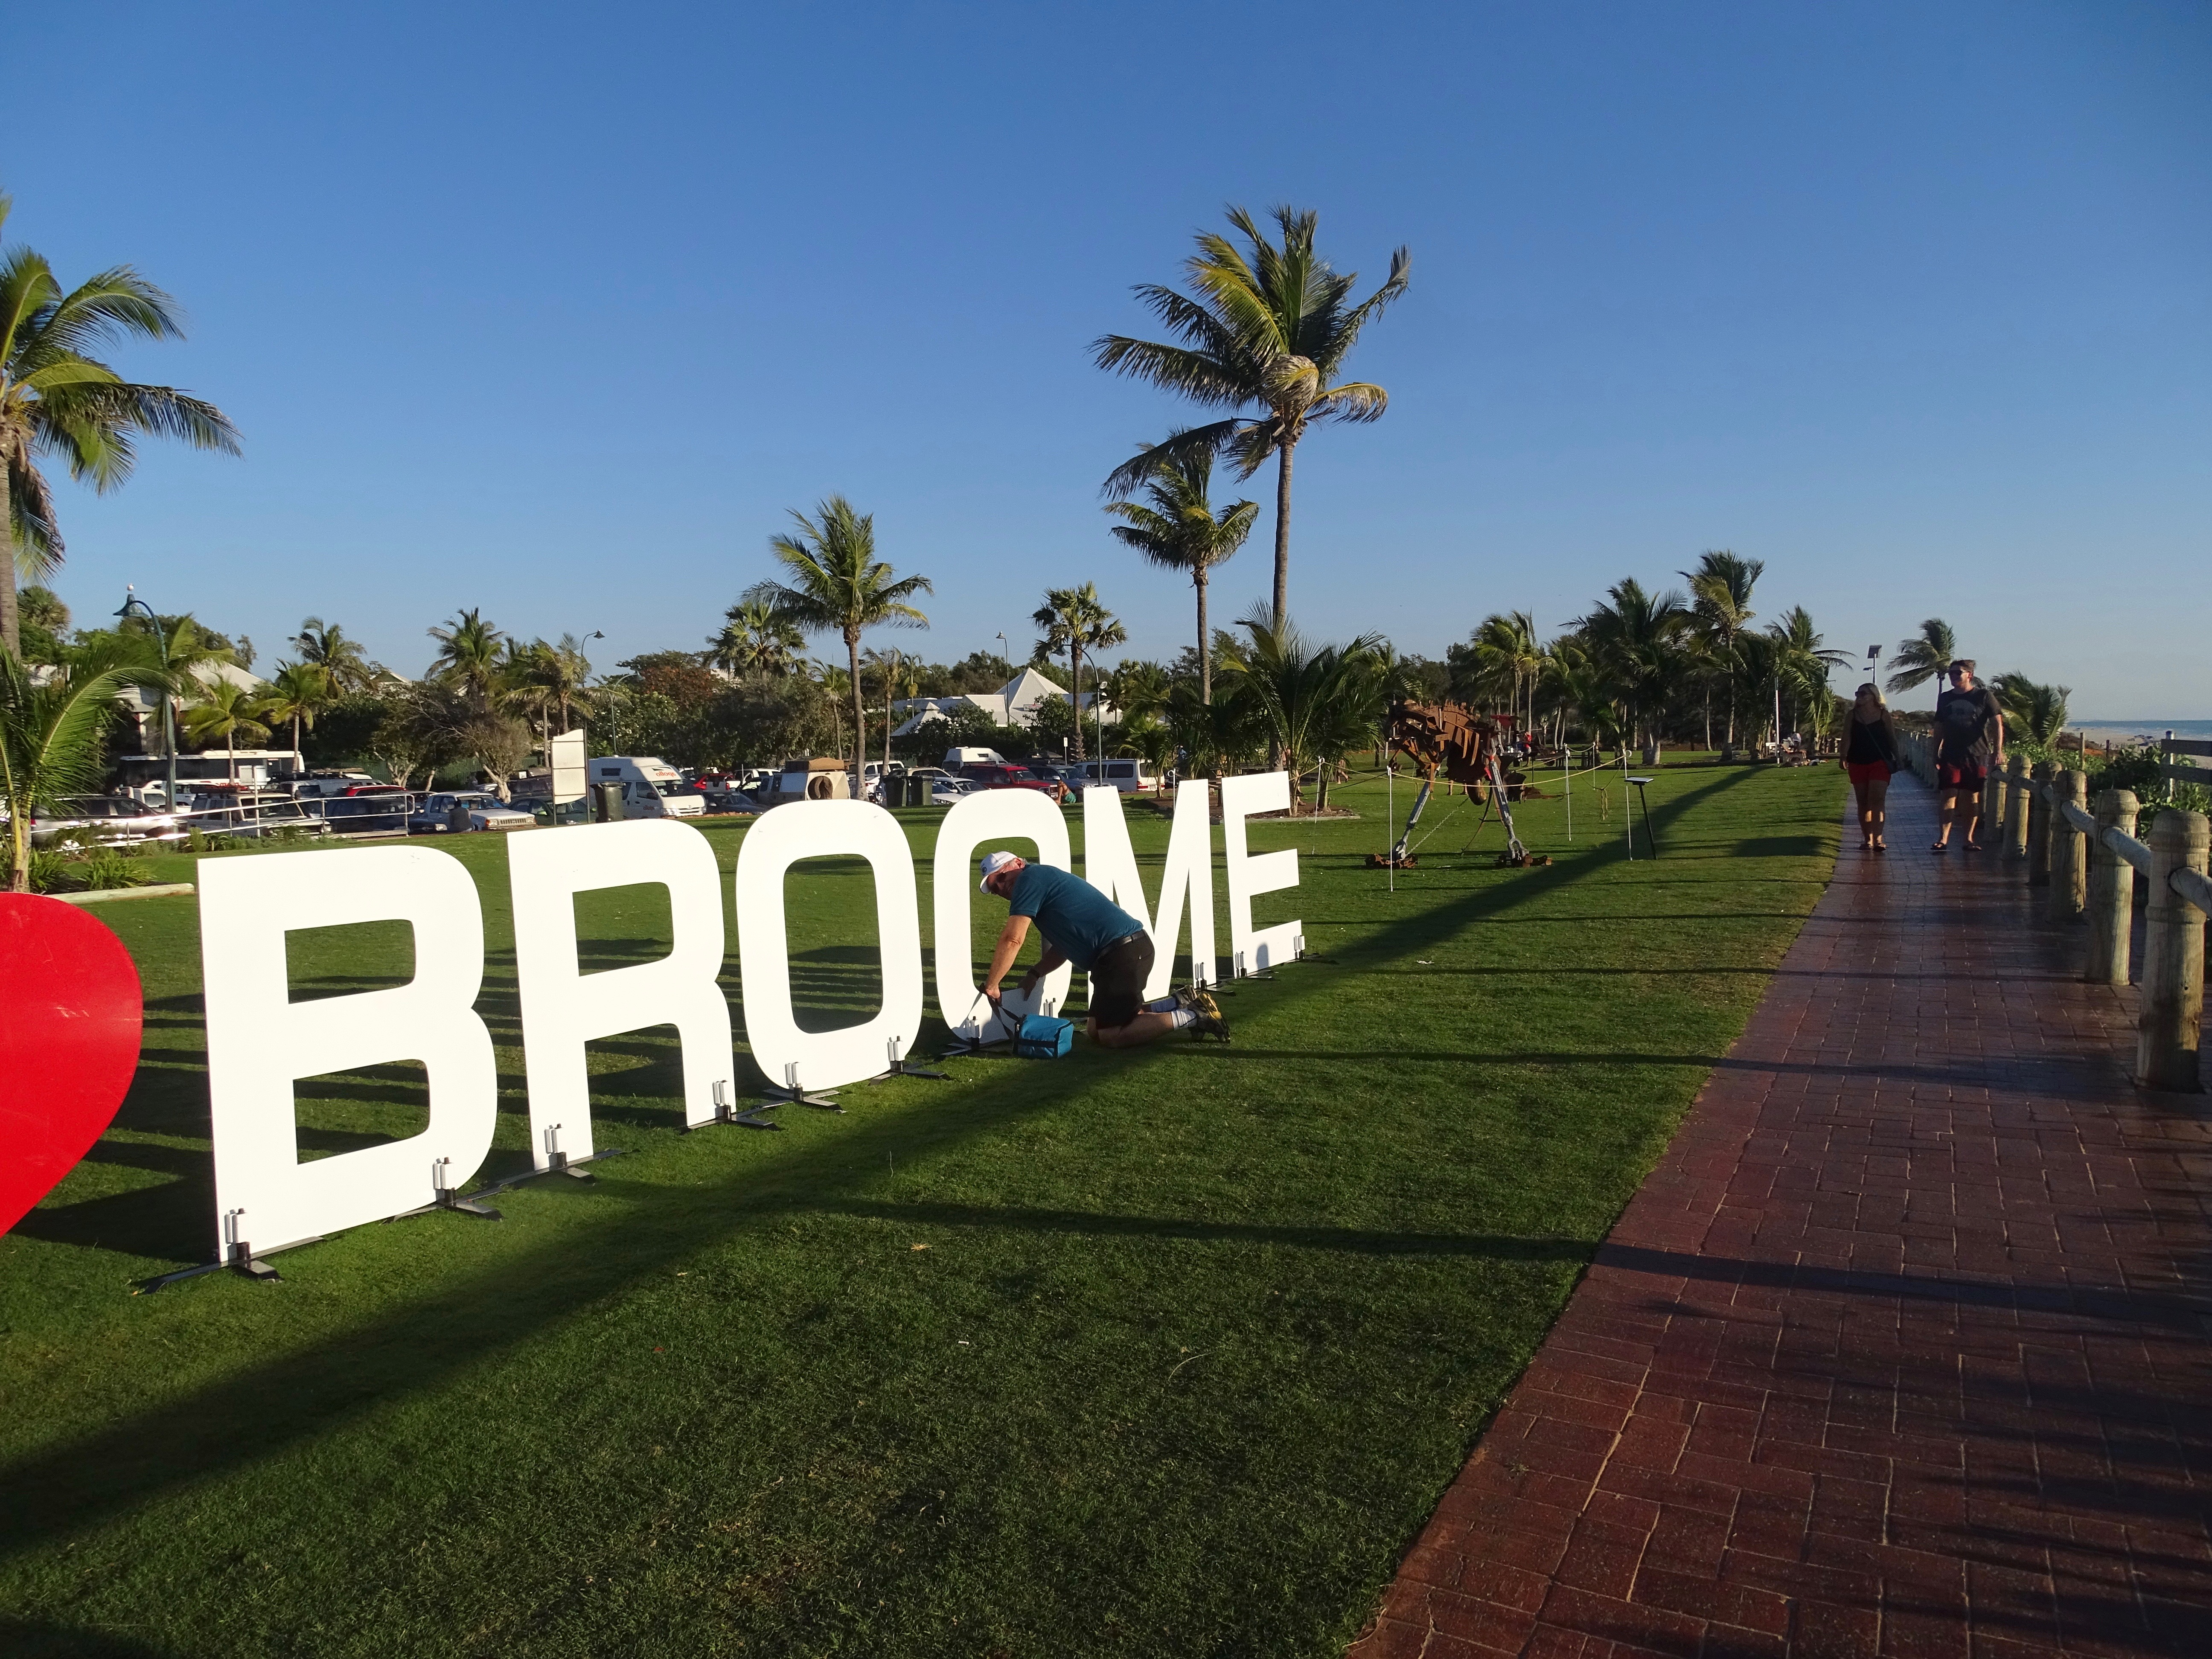 Broome sign